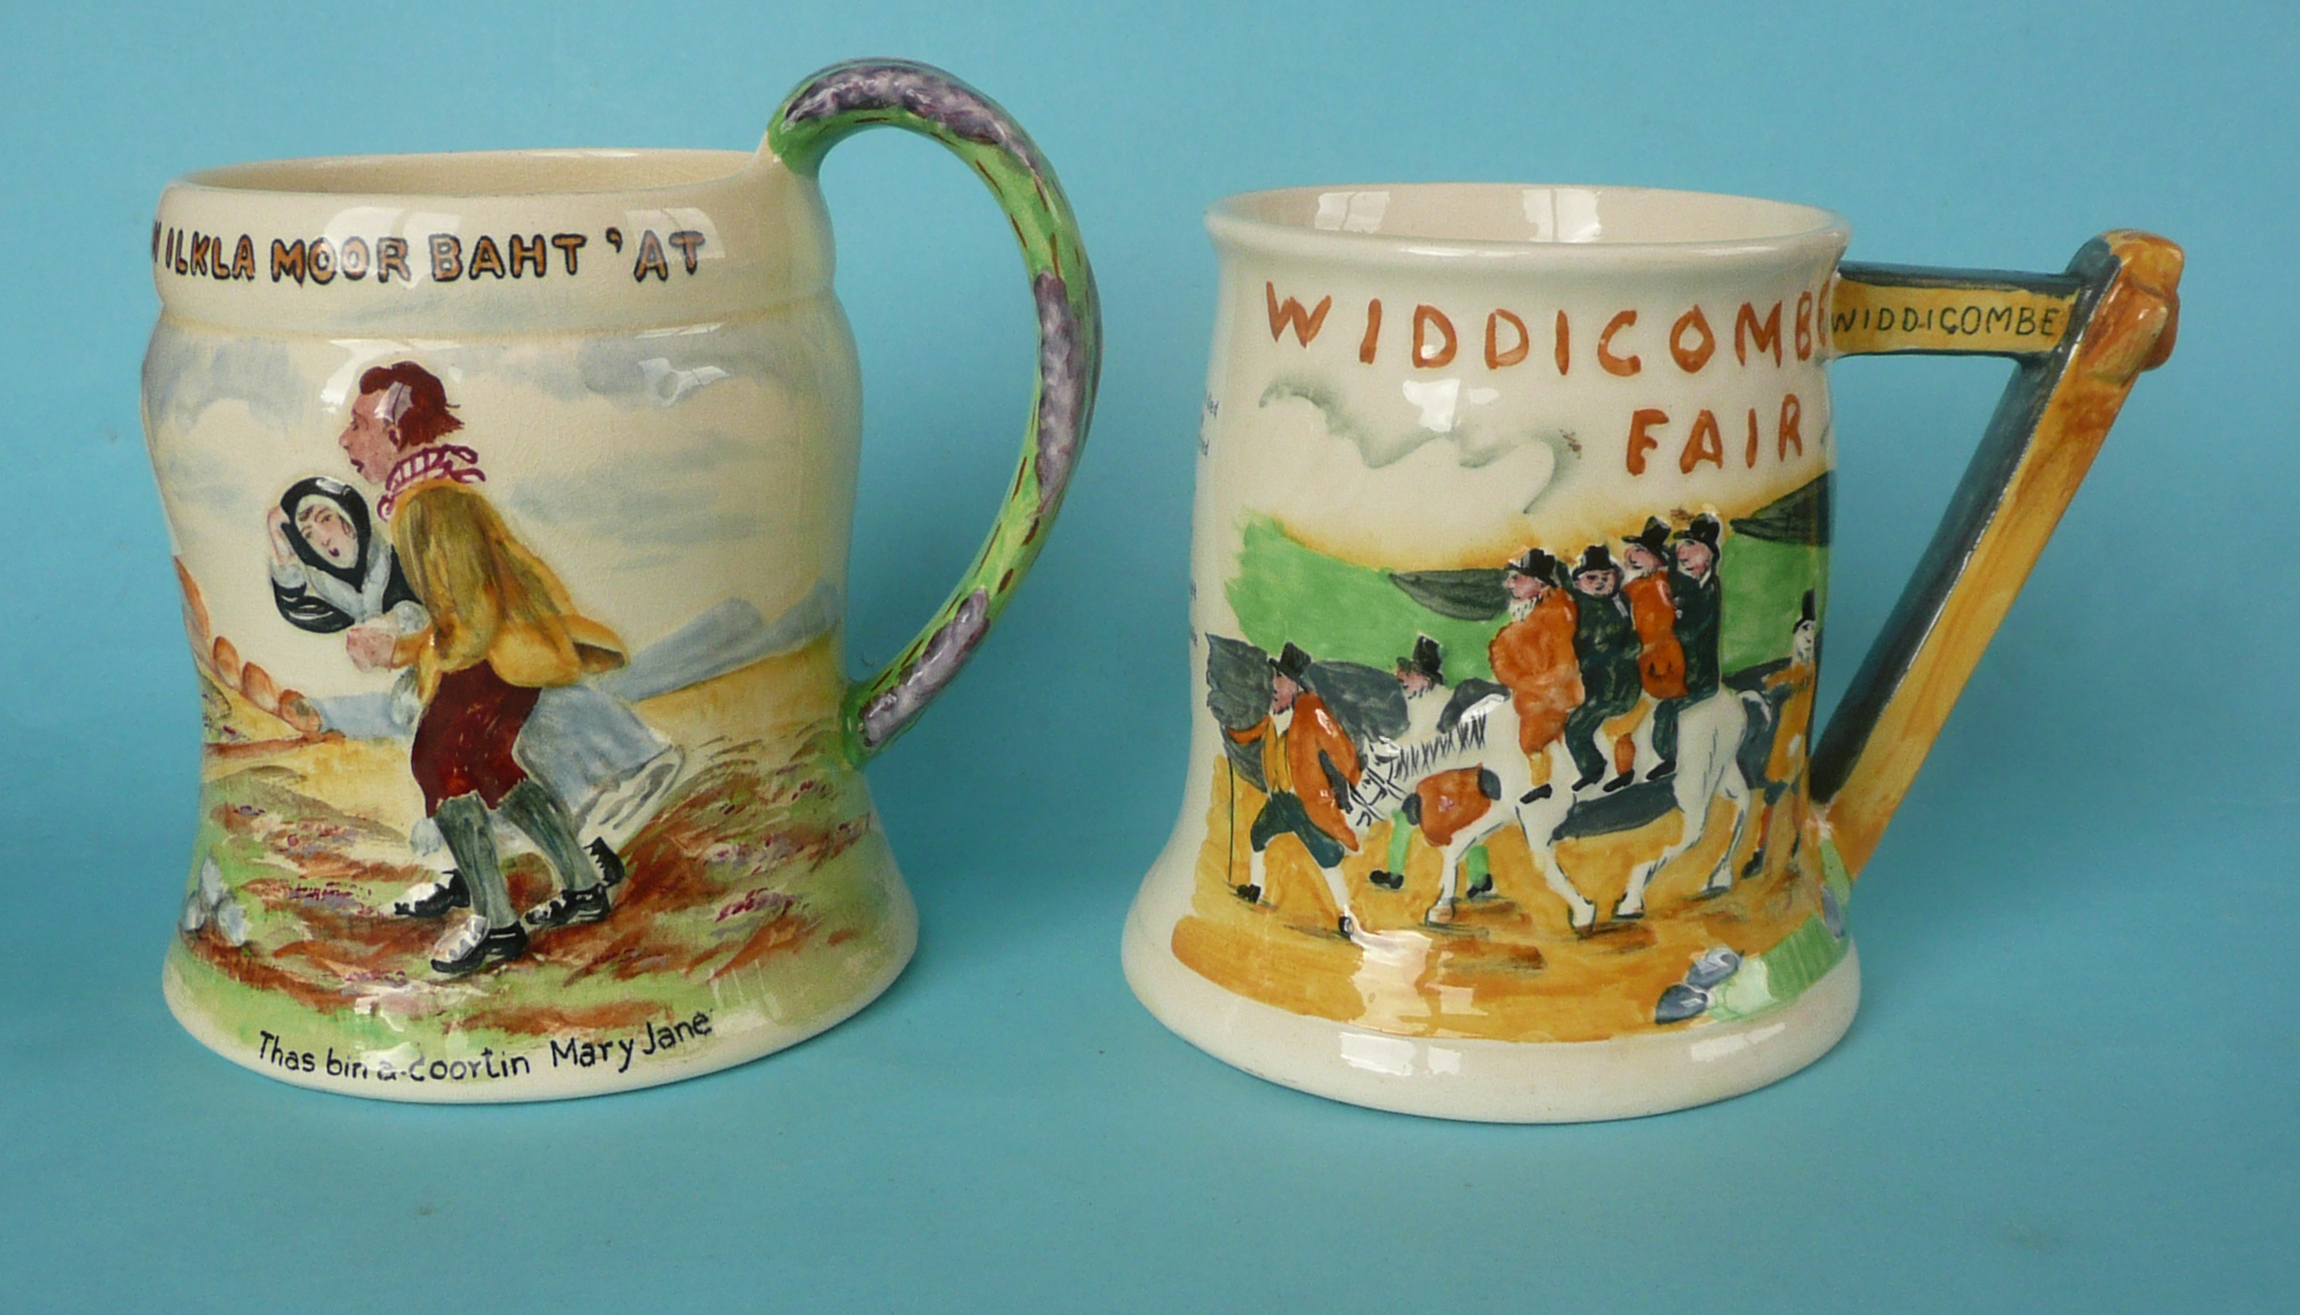 Lot 1 - A good Ilkla Moor musical jug, 140mm and a good Widdicombe Fair jug, both by Crown Devon and working